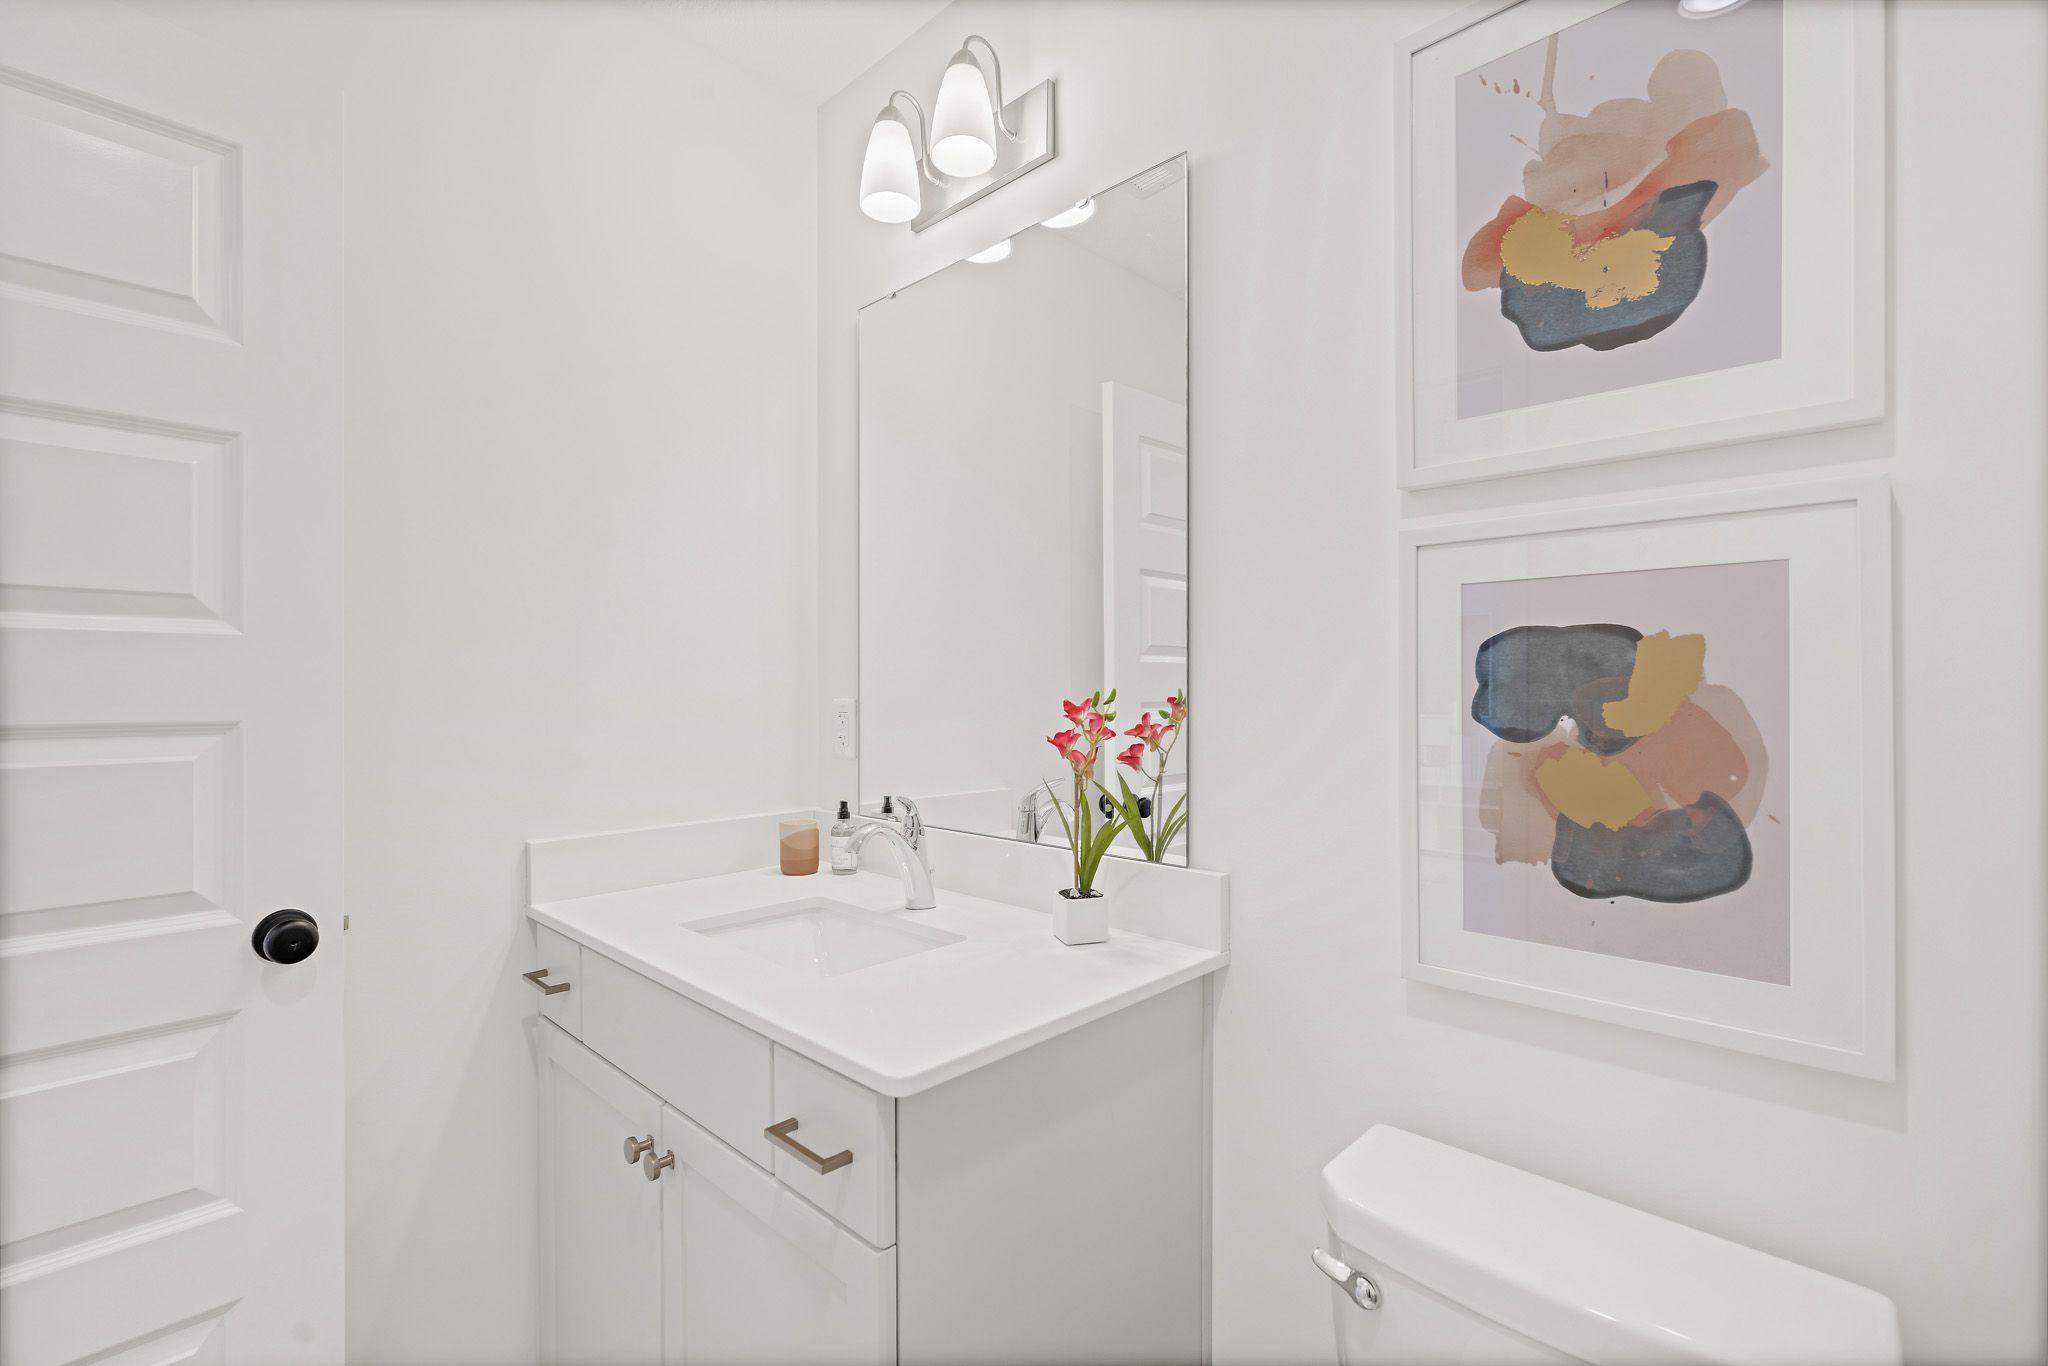 Bathroom featured in the sapphire By clover & hive in Kansas City, MO